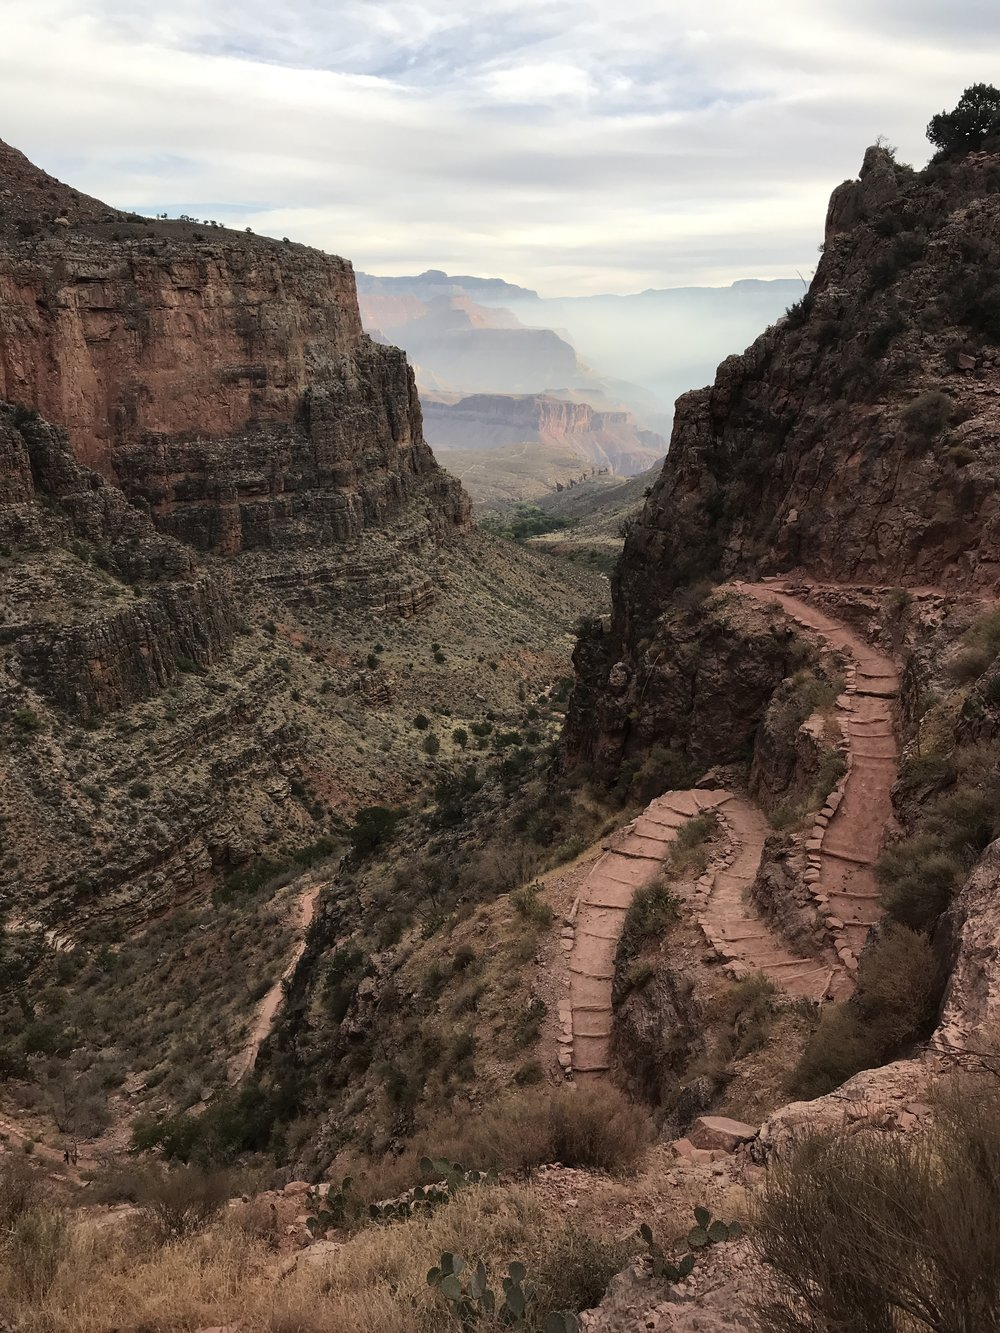 Looking into the Grand Canyon from Bright Angel Trail